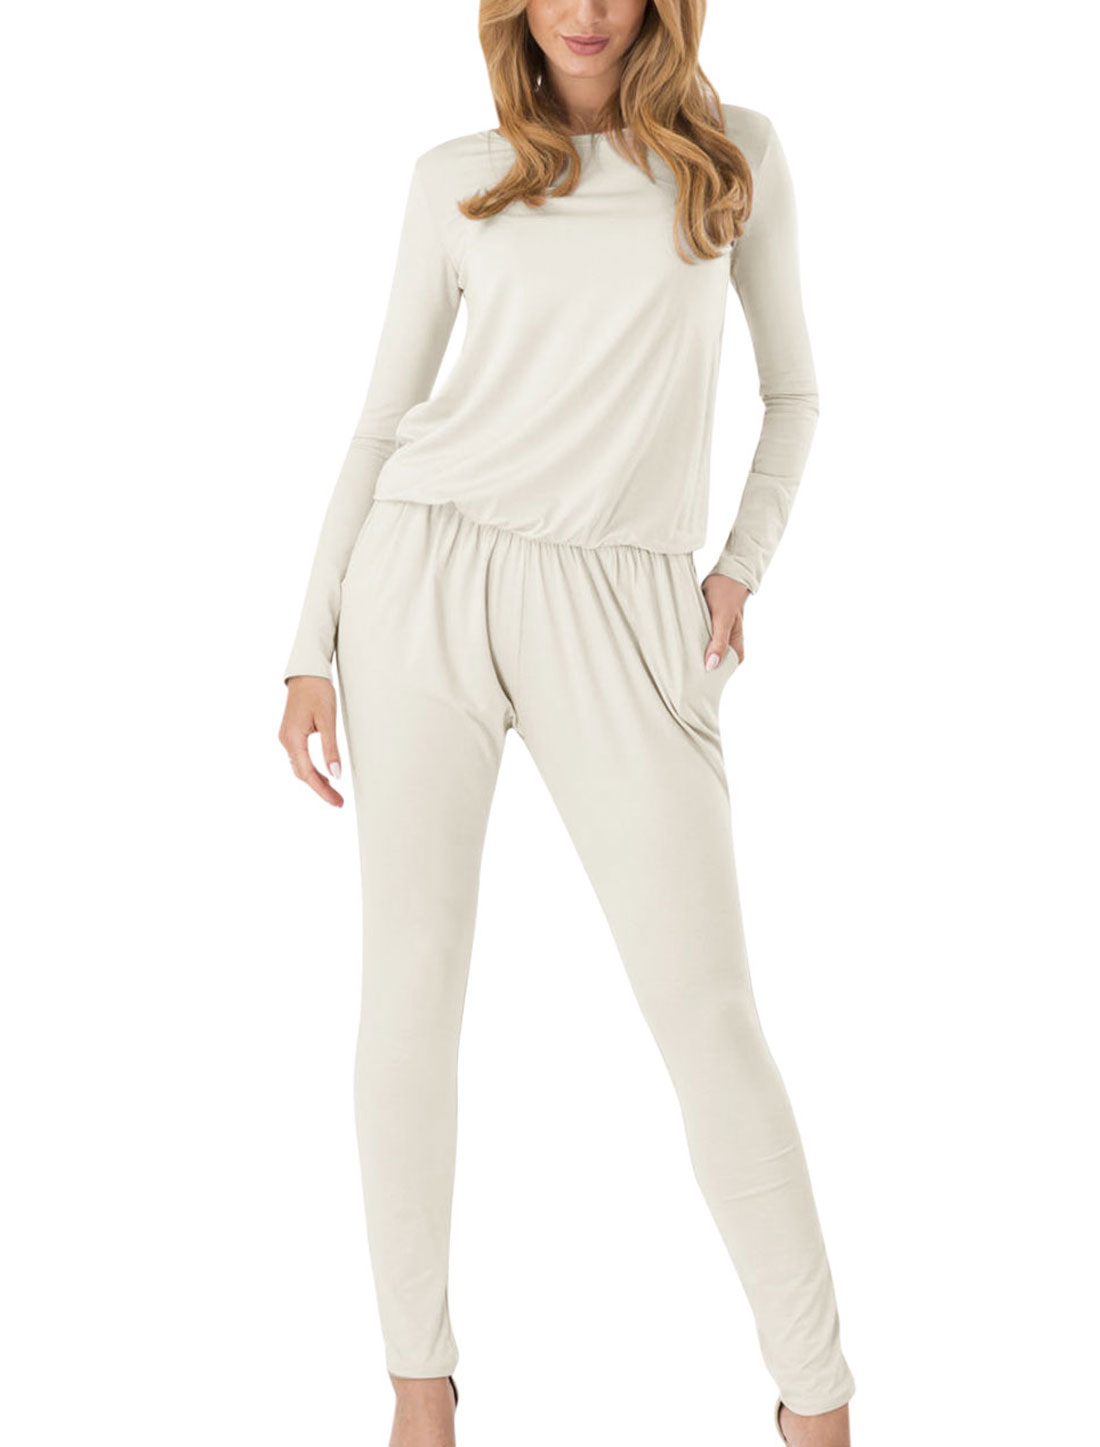 Long Sleeves Elastic Waist Casaul Jumpsuit for Women White M